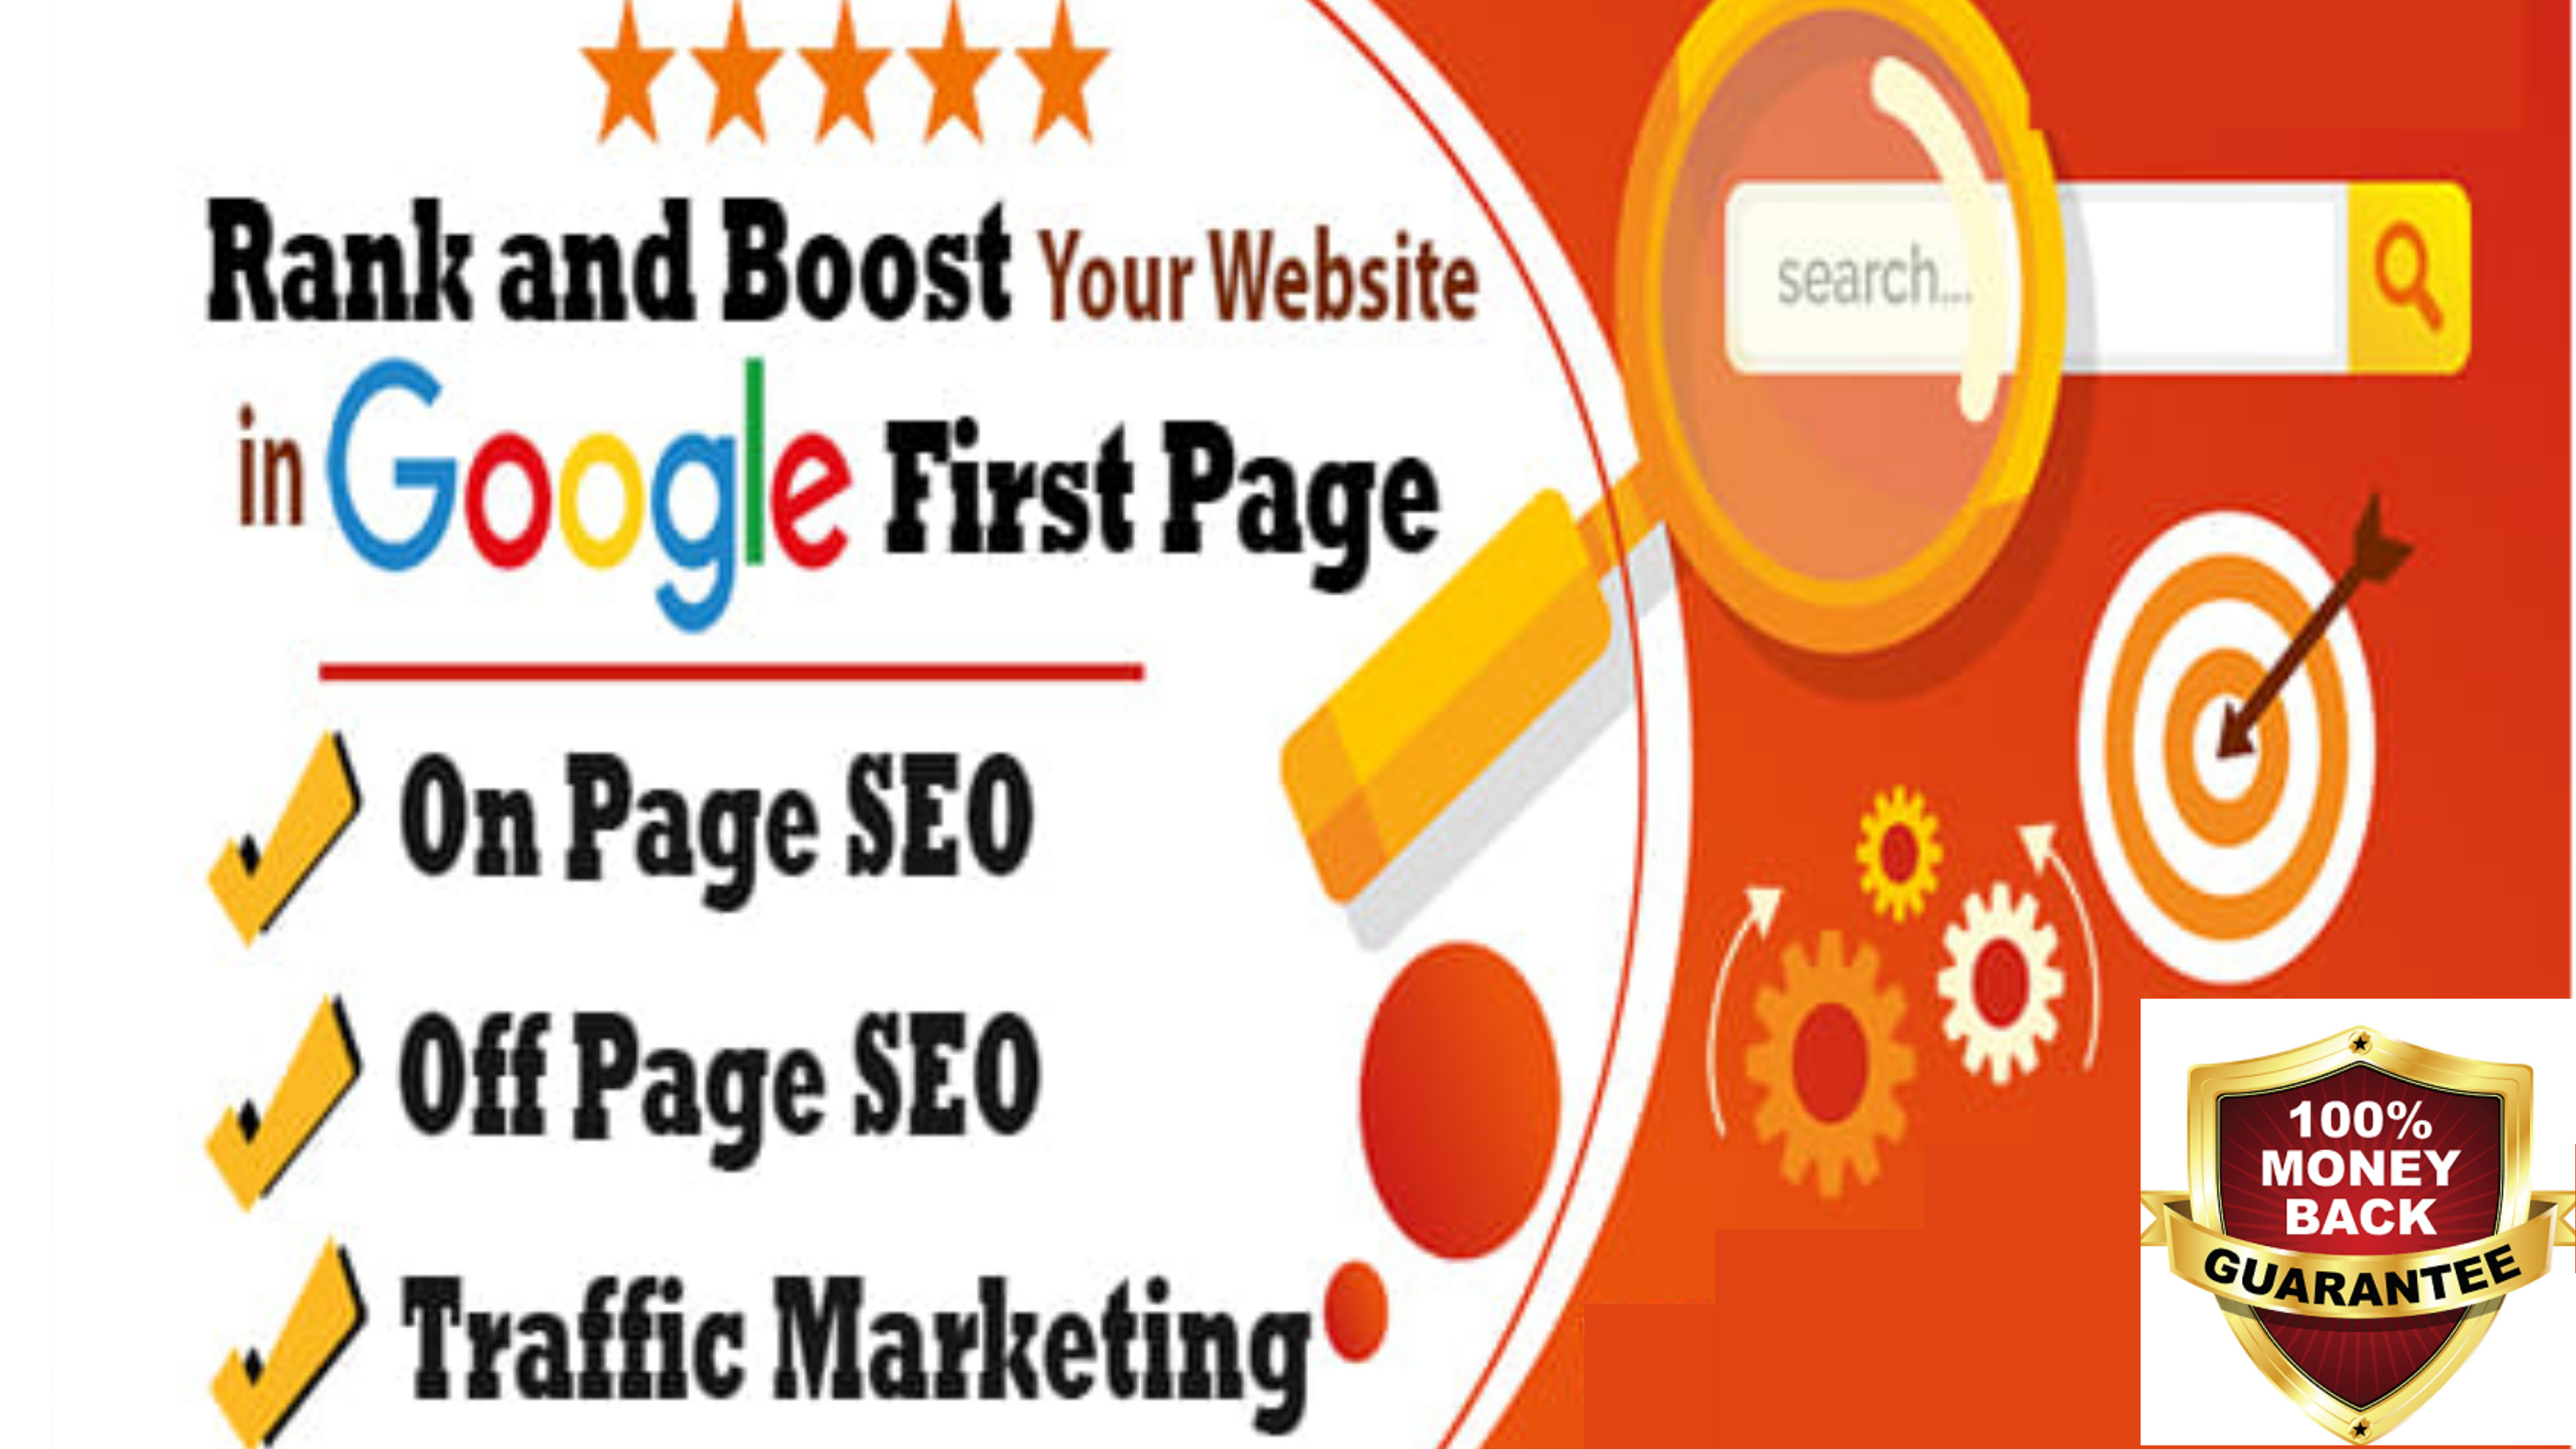 Monthly SEO Service with Backlinks for GOOGLE Top Ranking - 8 KEYWORDS